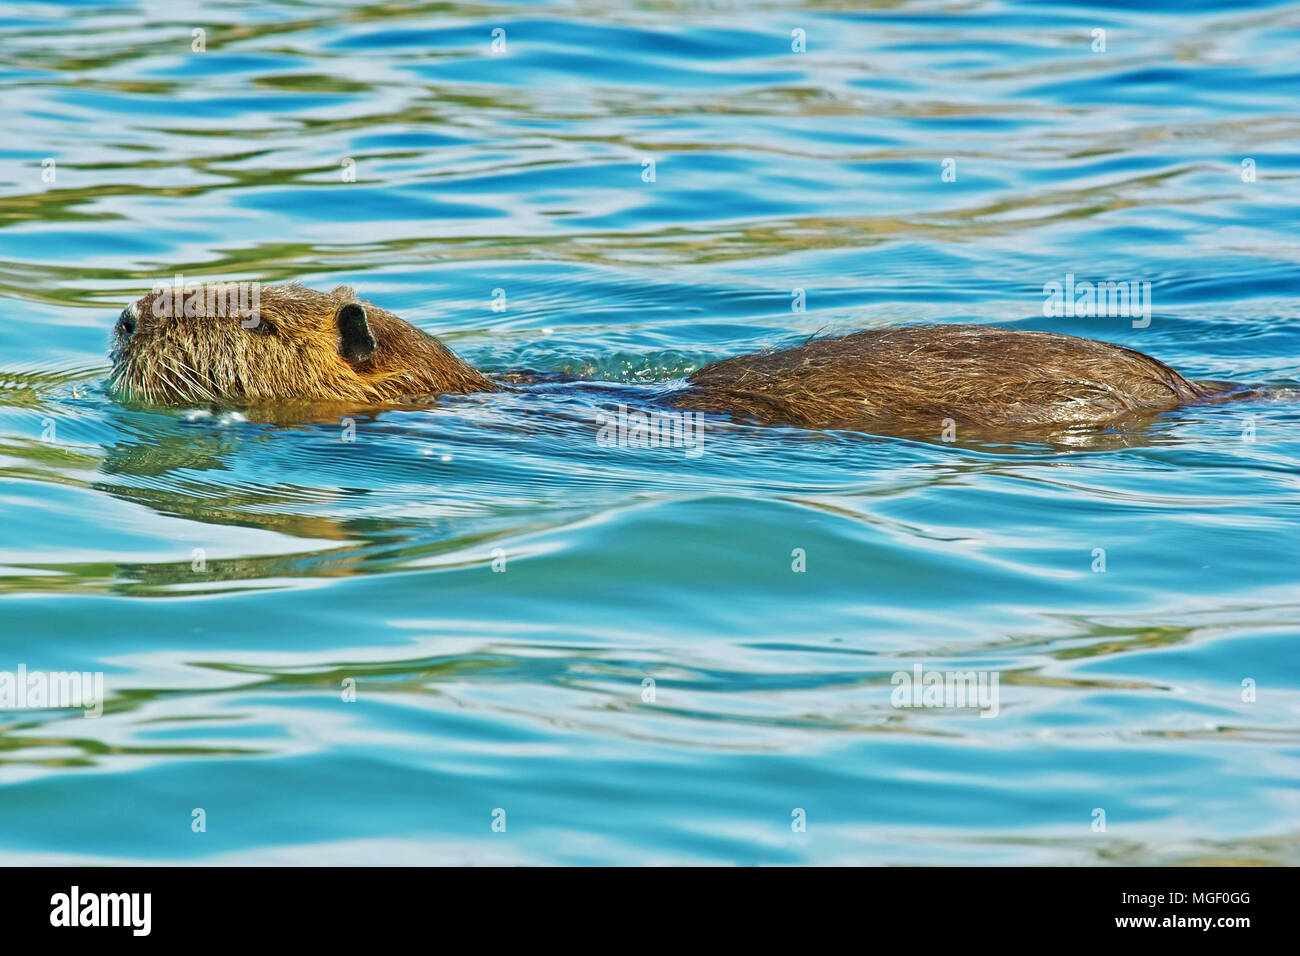 specimen of coypu while is swimming in a river - Stock Image